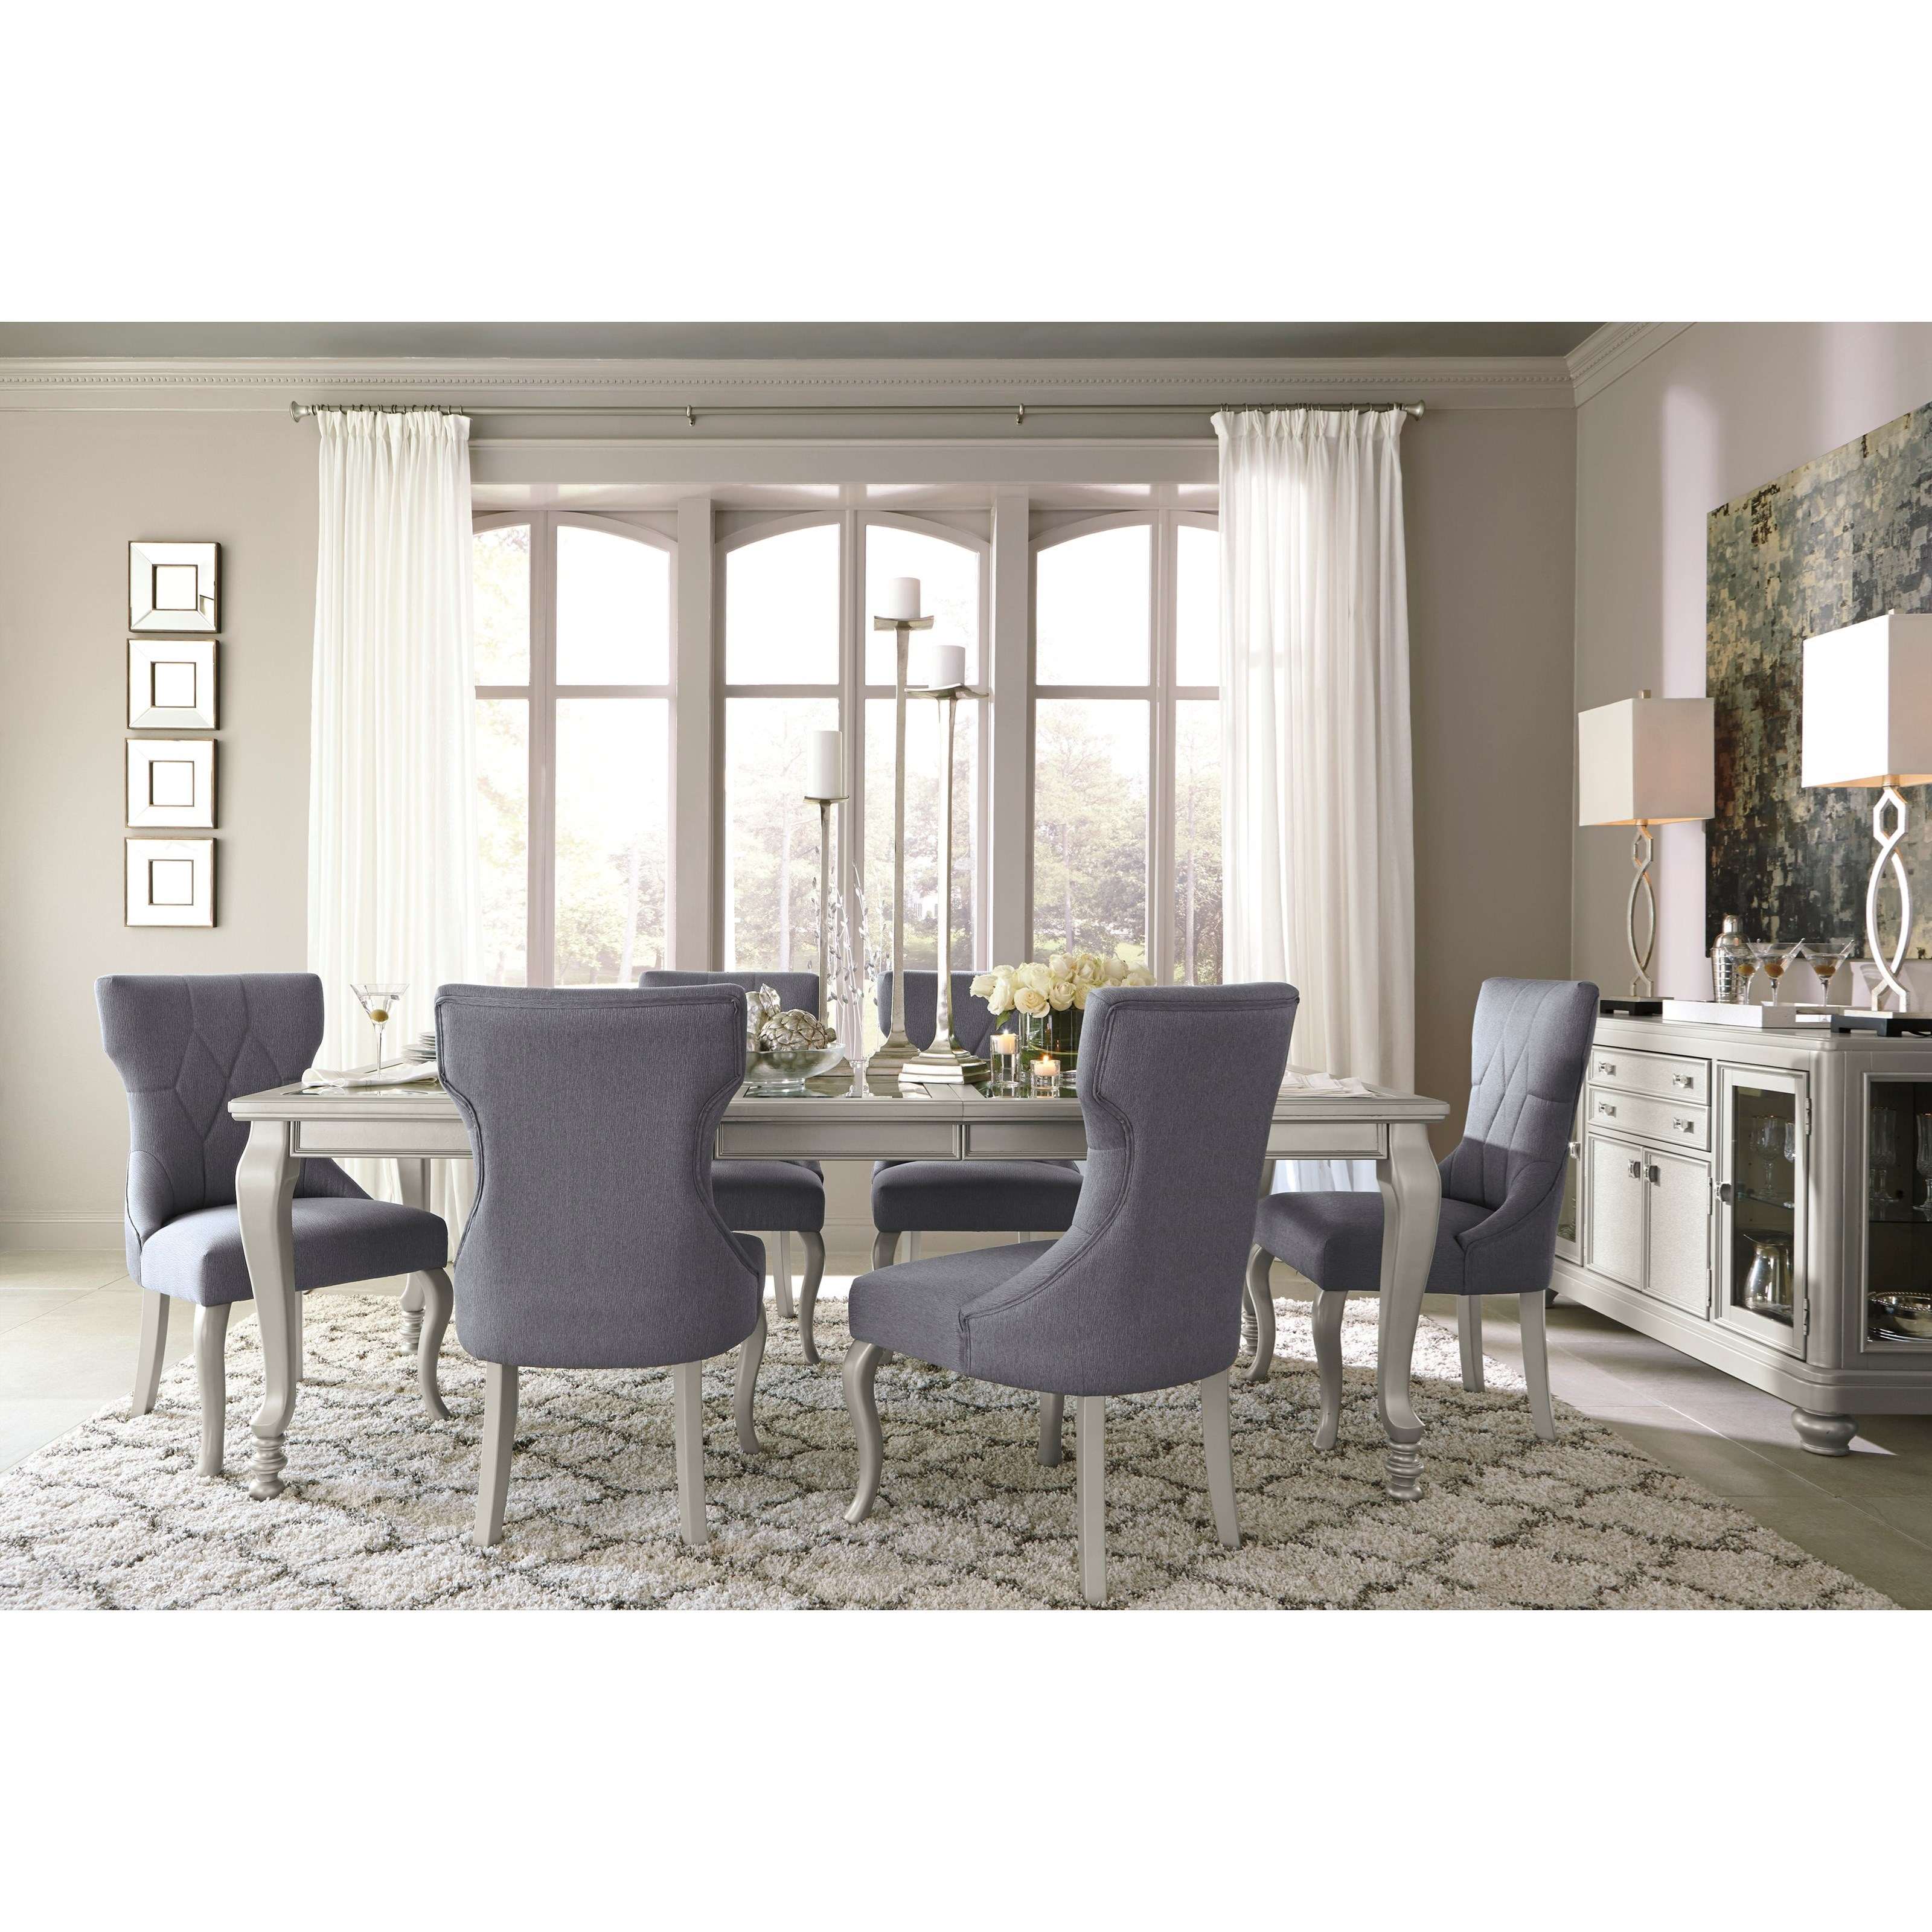 Coralayne Formal Dining Room Group by Ashley (Signature Design) at Johnny Janosik